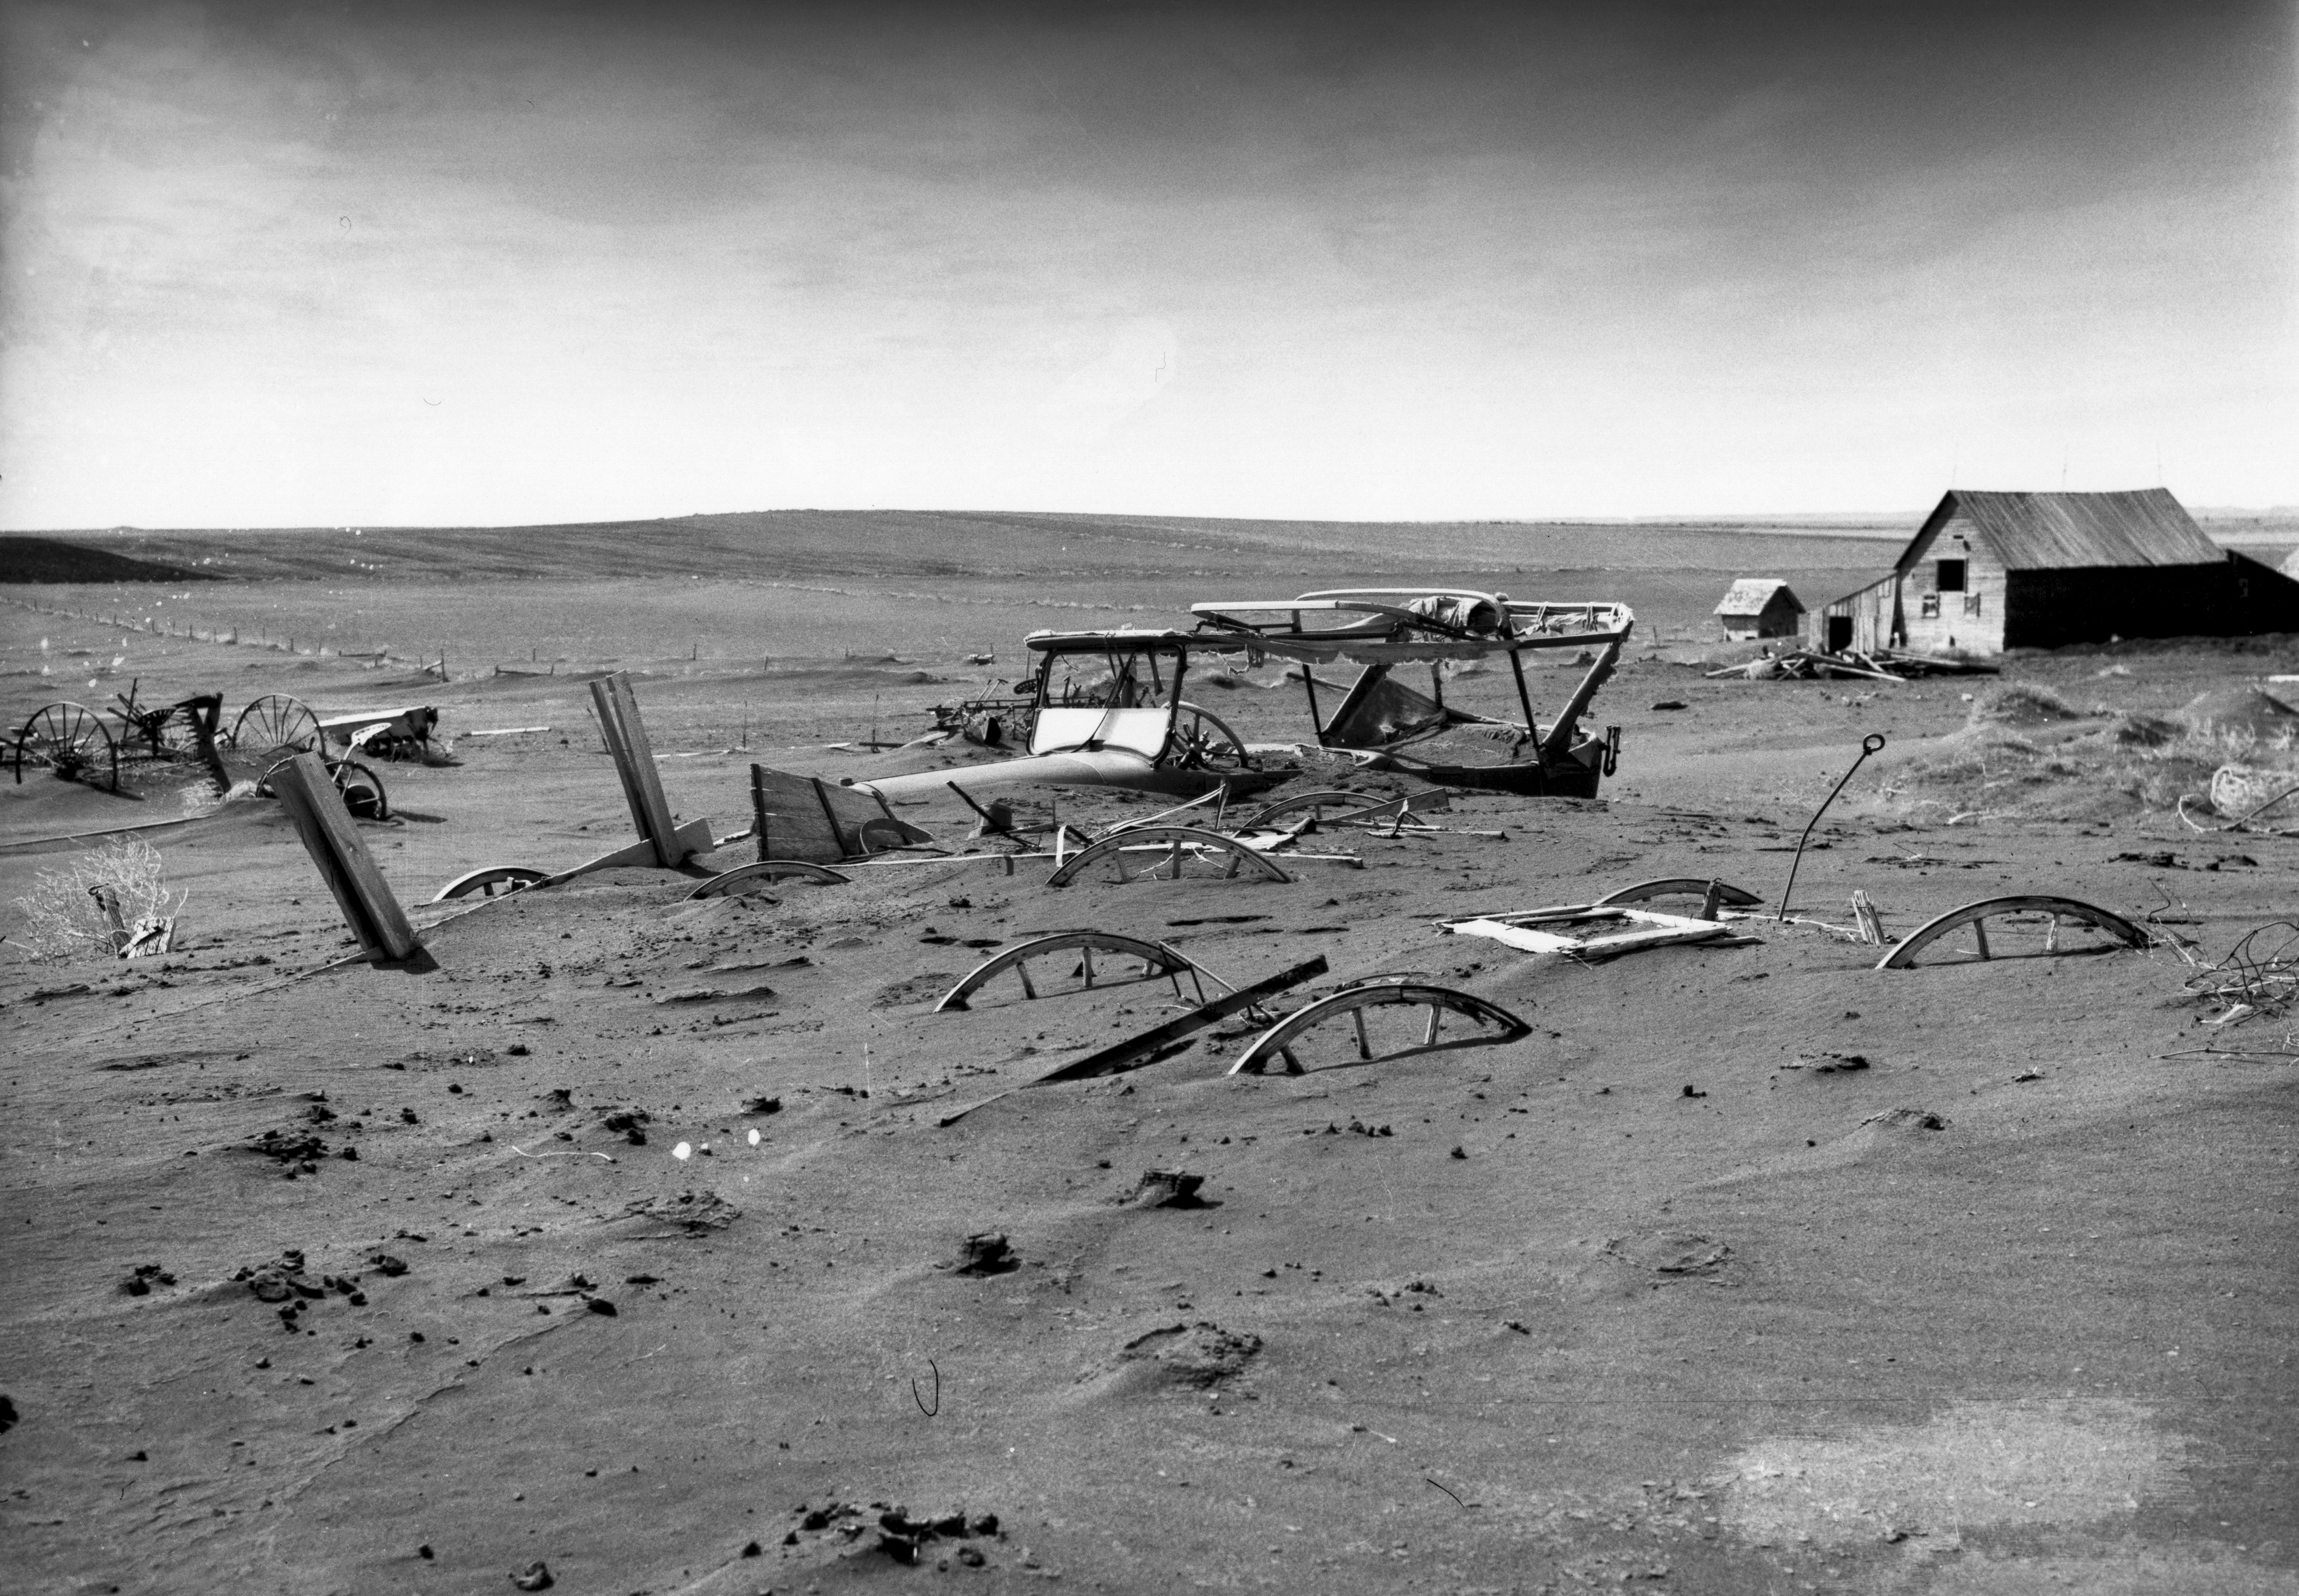 Buried Machinery During Dust Bowl